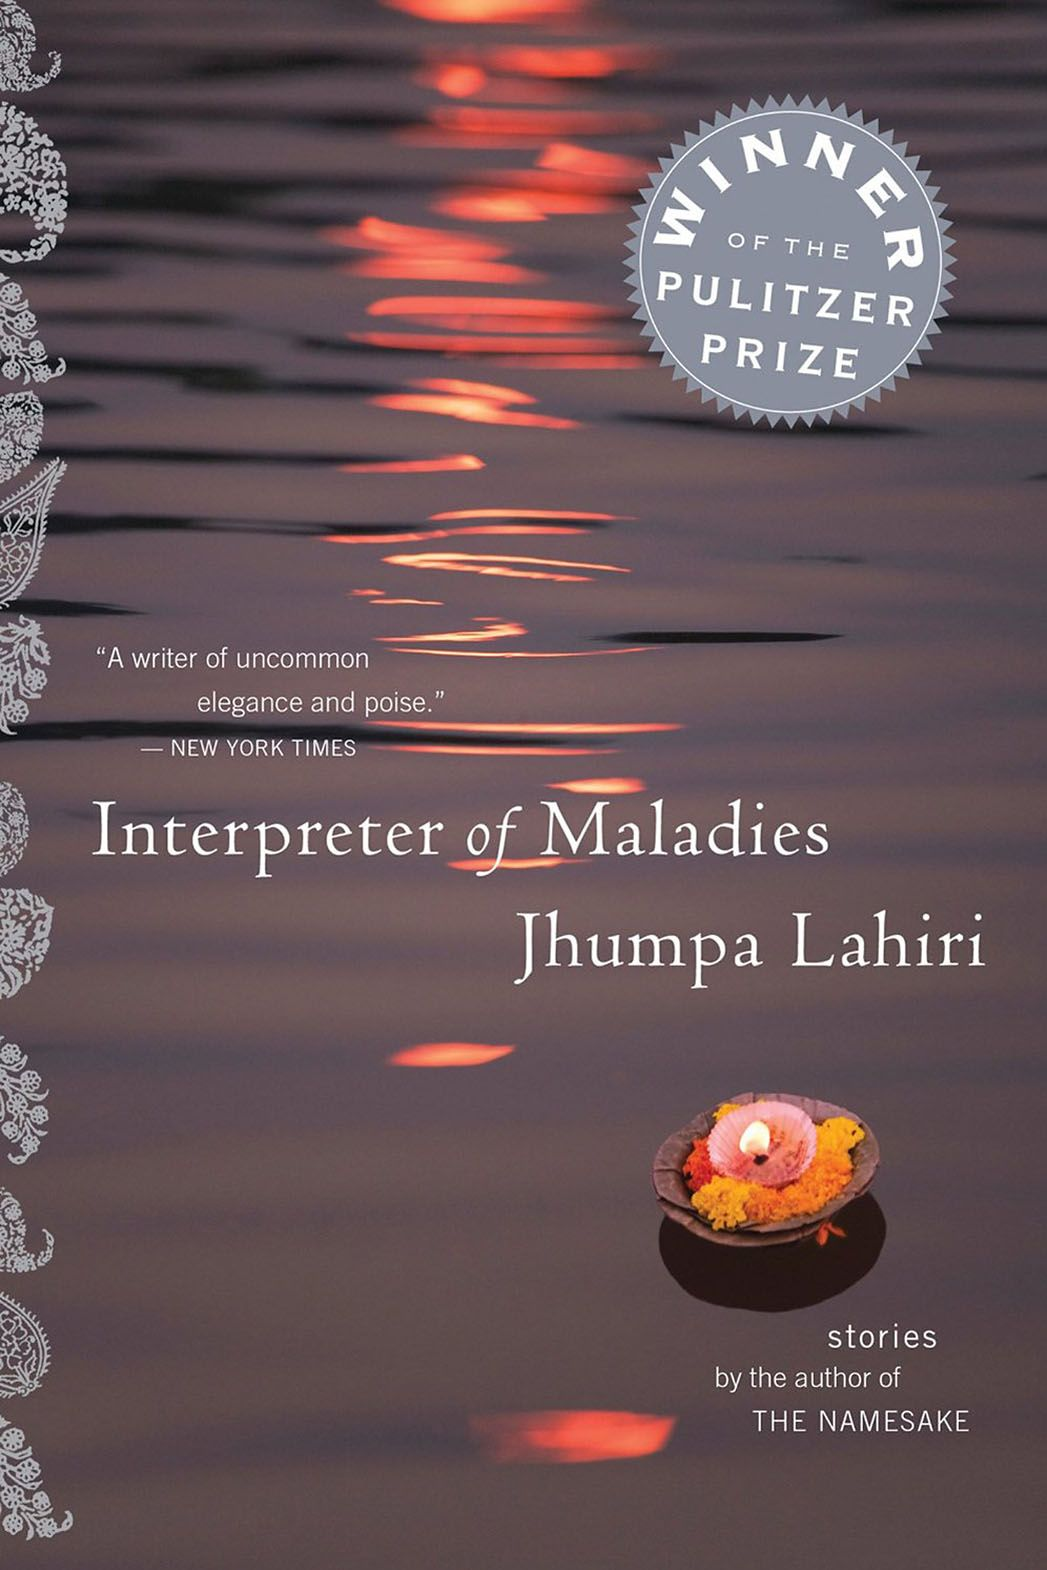 Interpreter of Maladies paperback by Jhumpa Lahiri